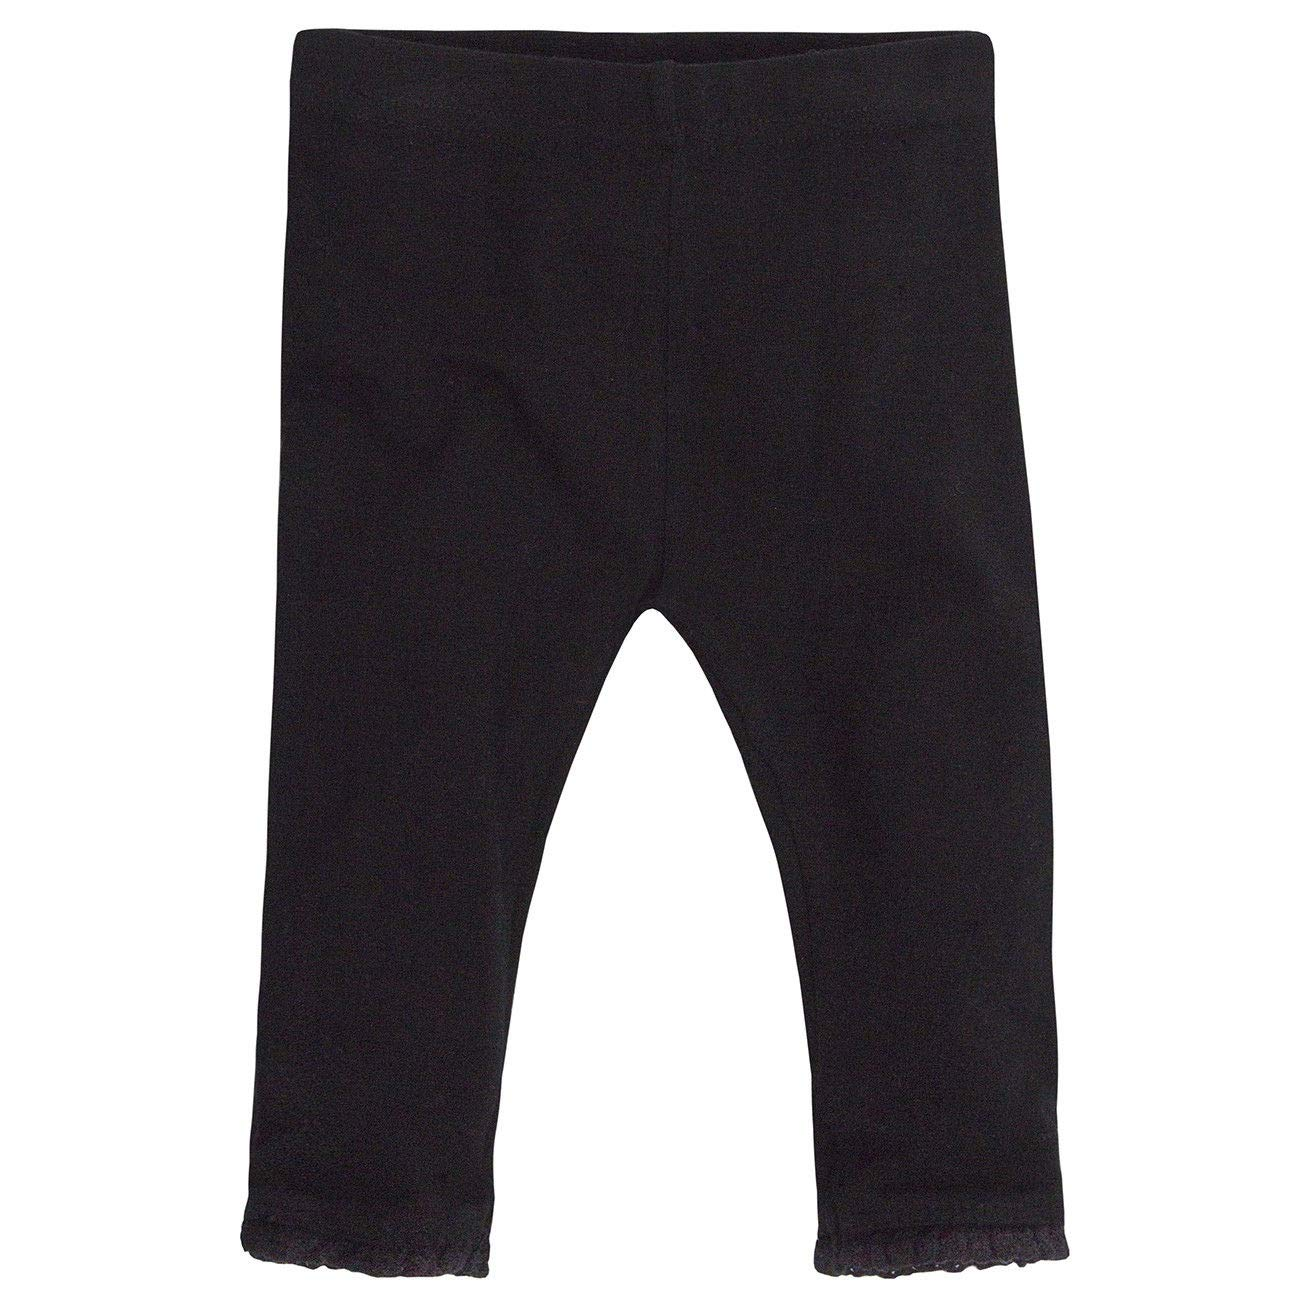 Baby Girls Two Pack LeggingCotton Rich with Elastane 0-3 Months up to 18-24 months